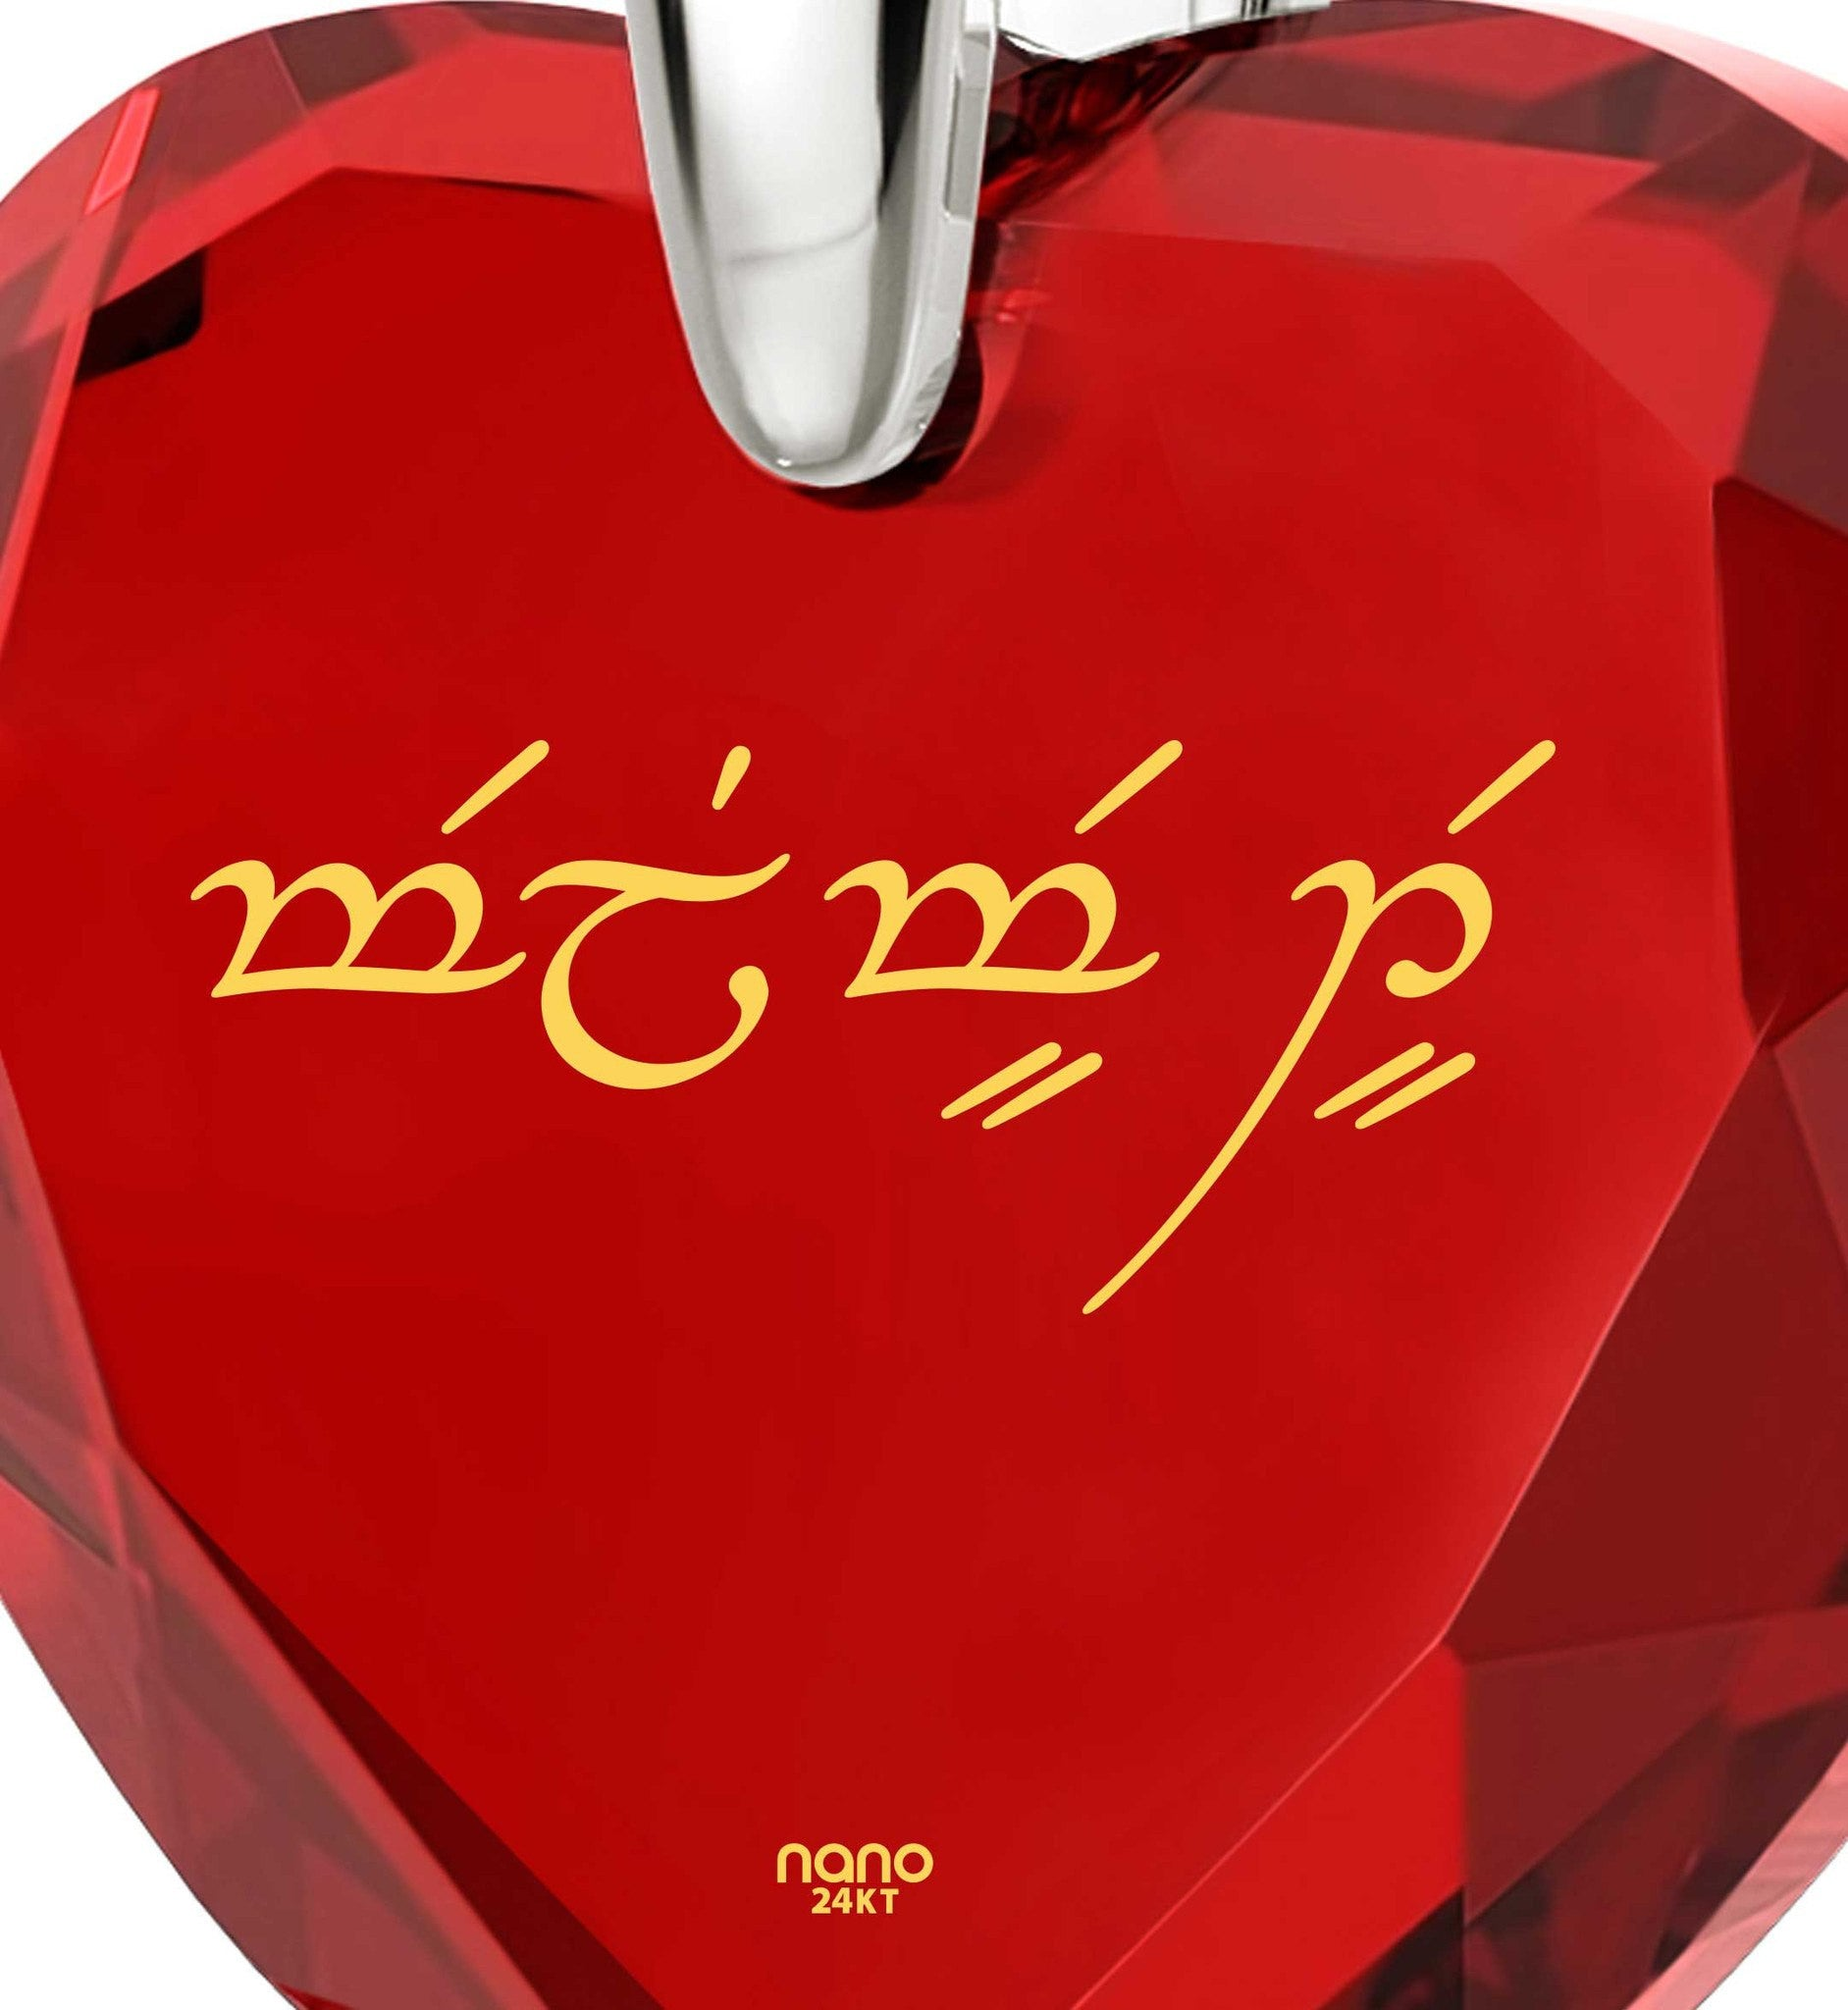 "Cute Necklaces for Her, Elvish Language for ""I Love You"", Great Gifts for Wife, Nano Jewelry"